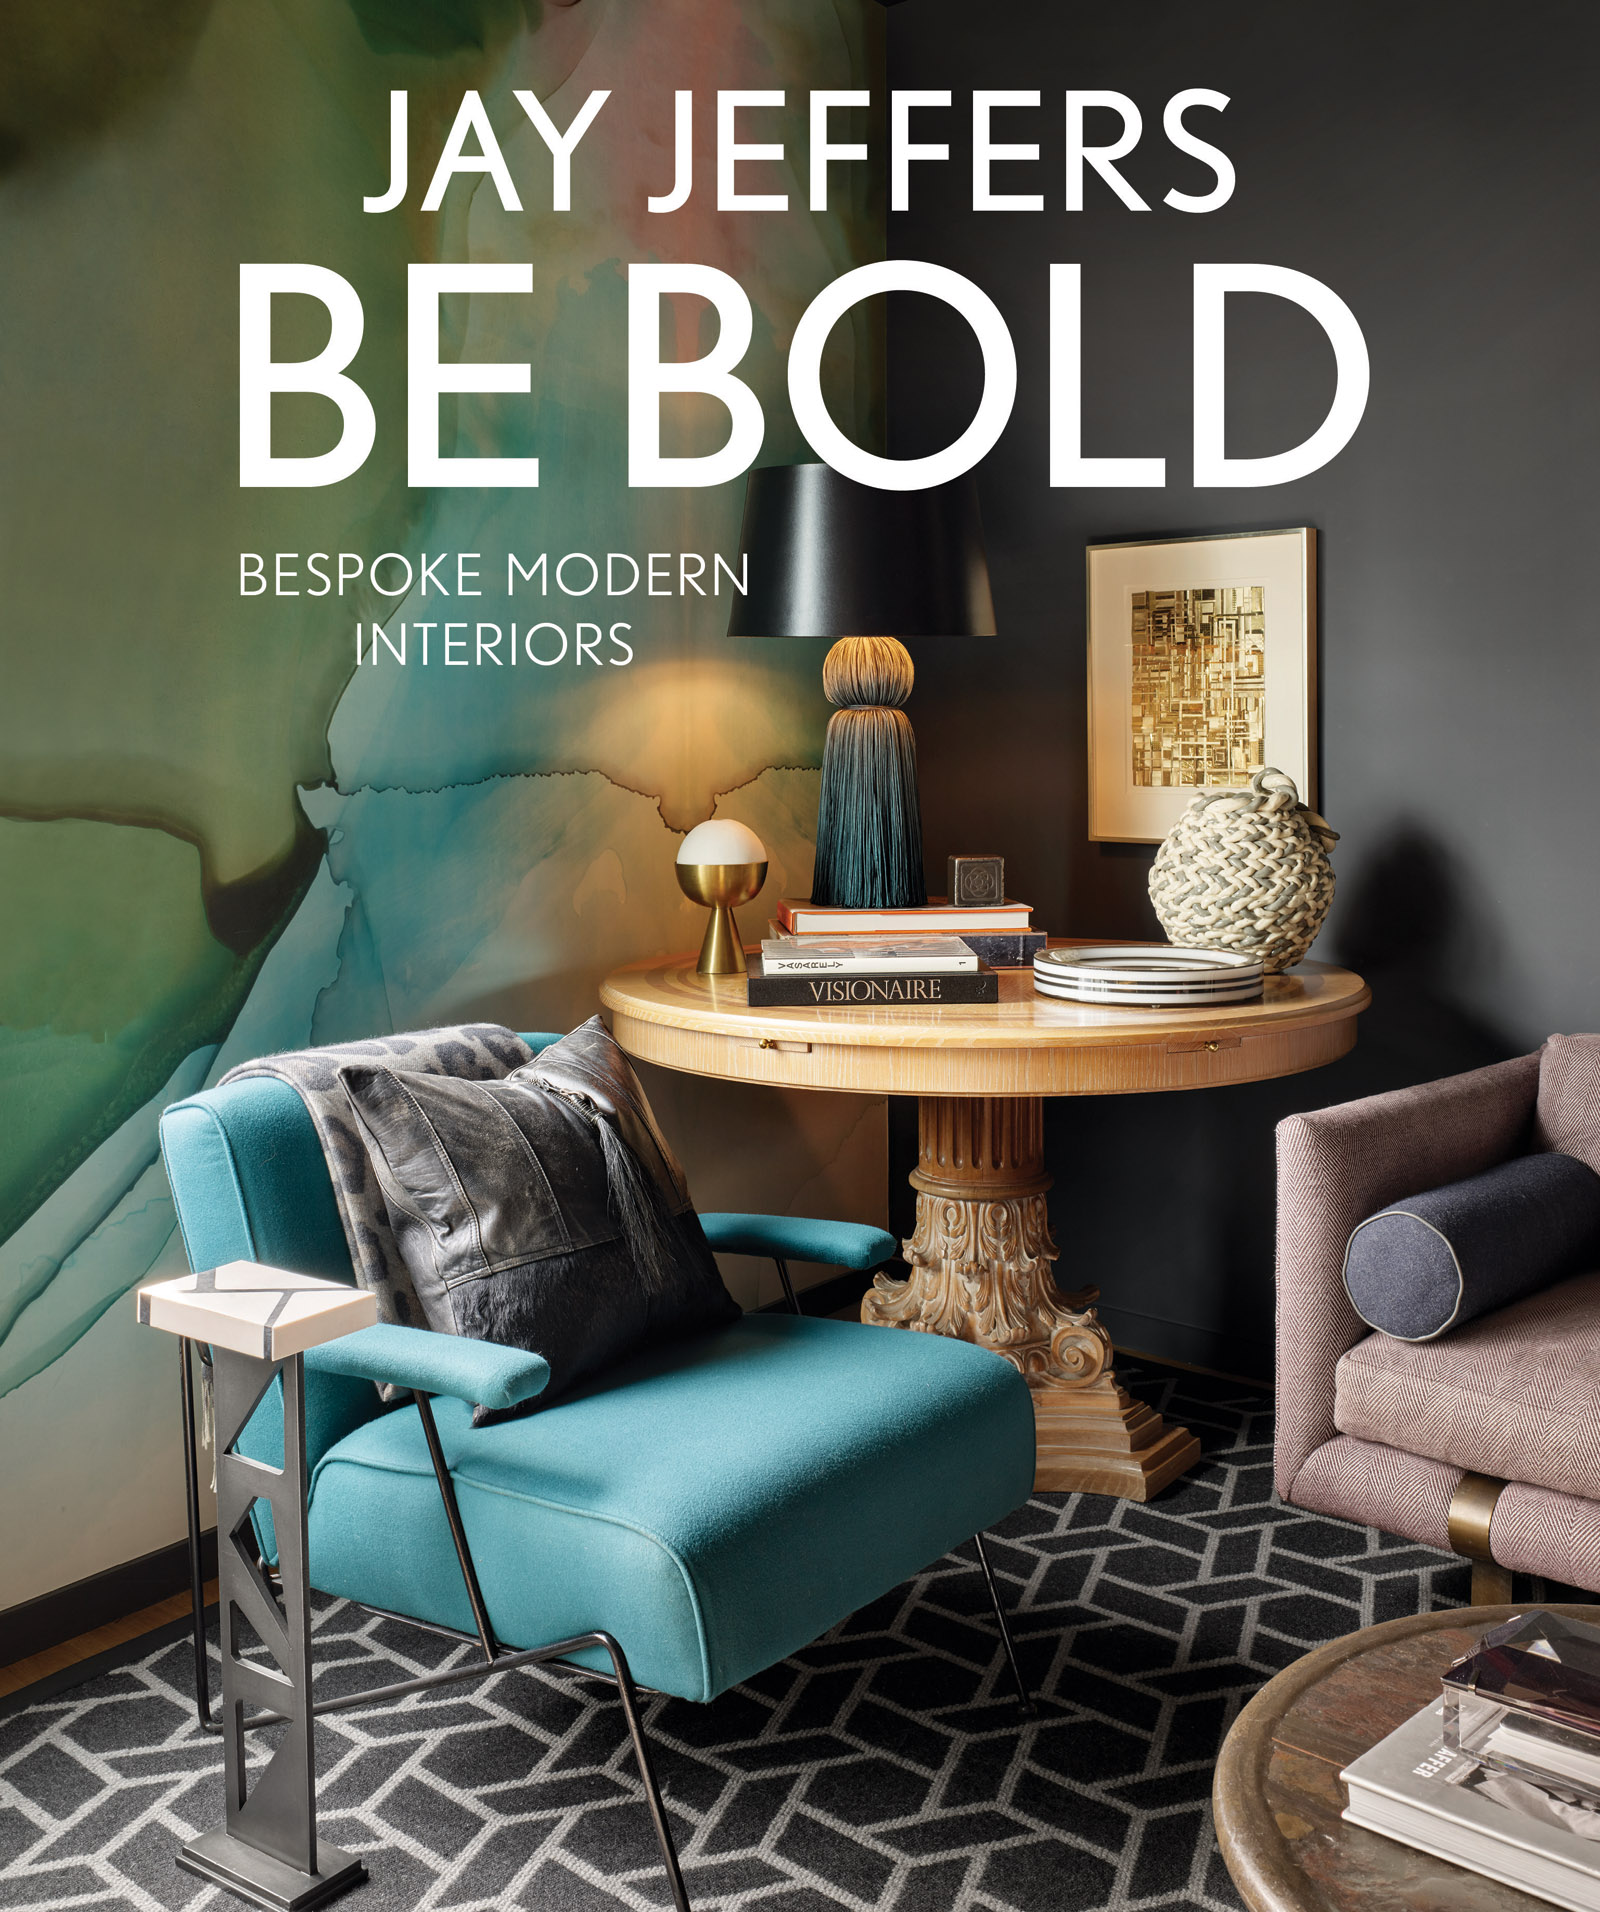 Jay Jeffers Be Bold: Bespoke Modern Interiors